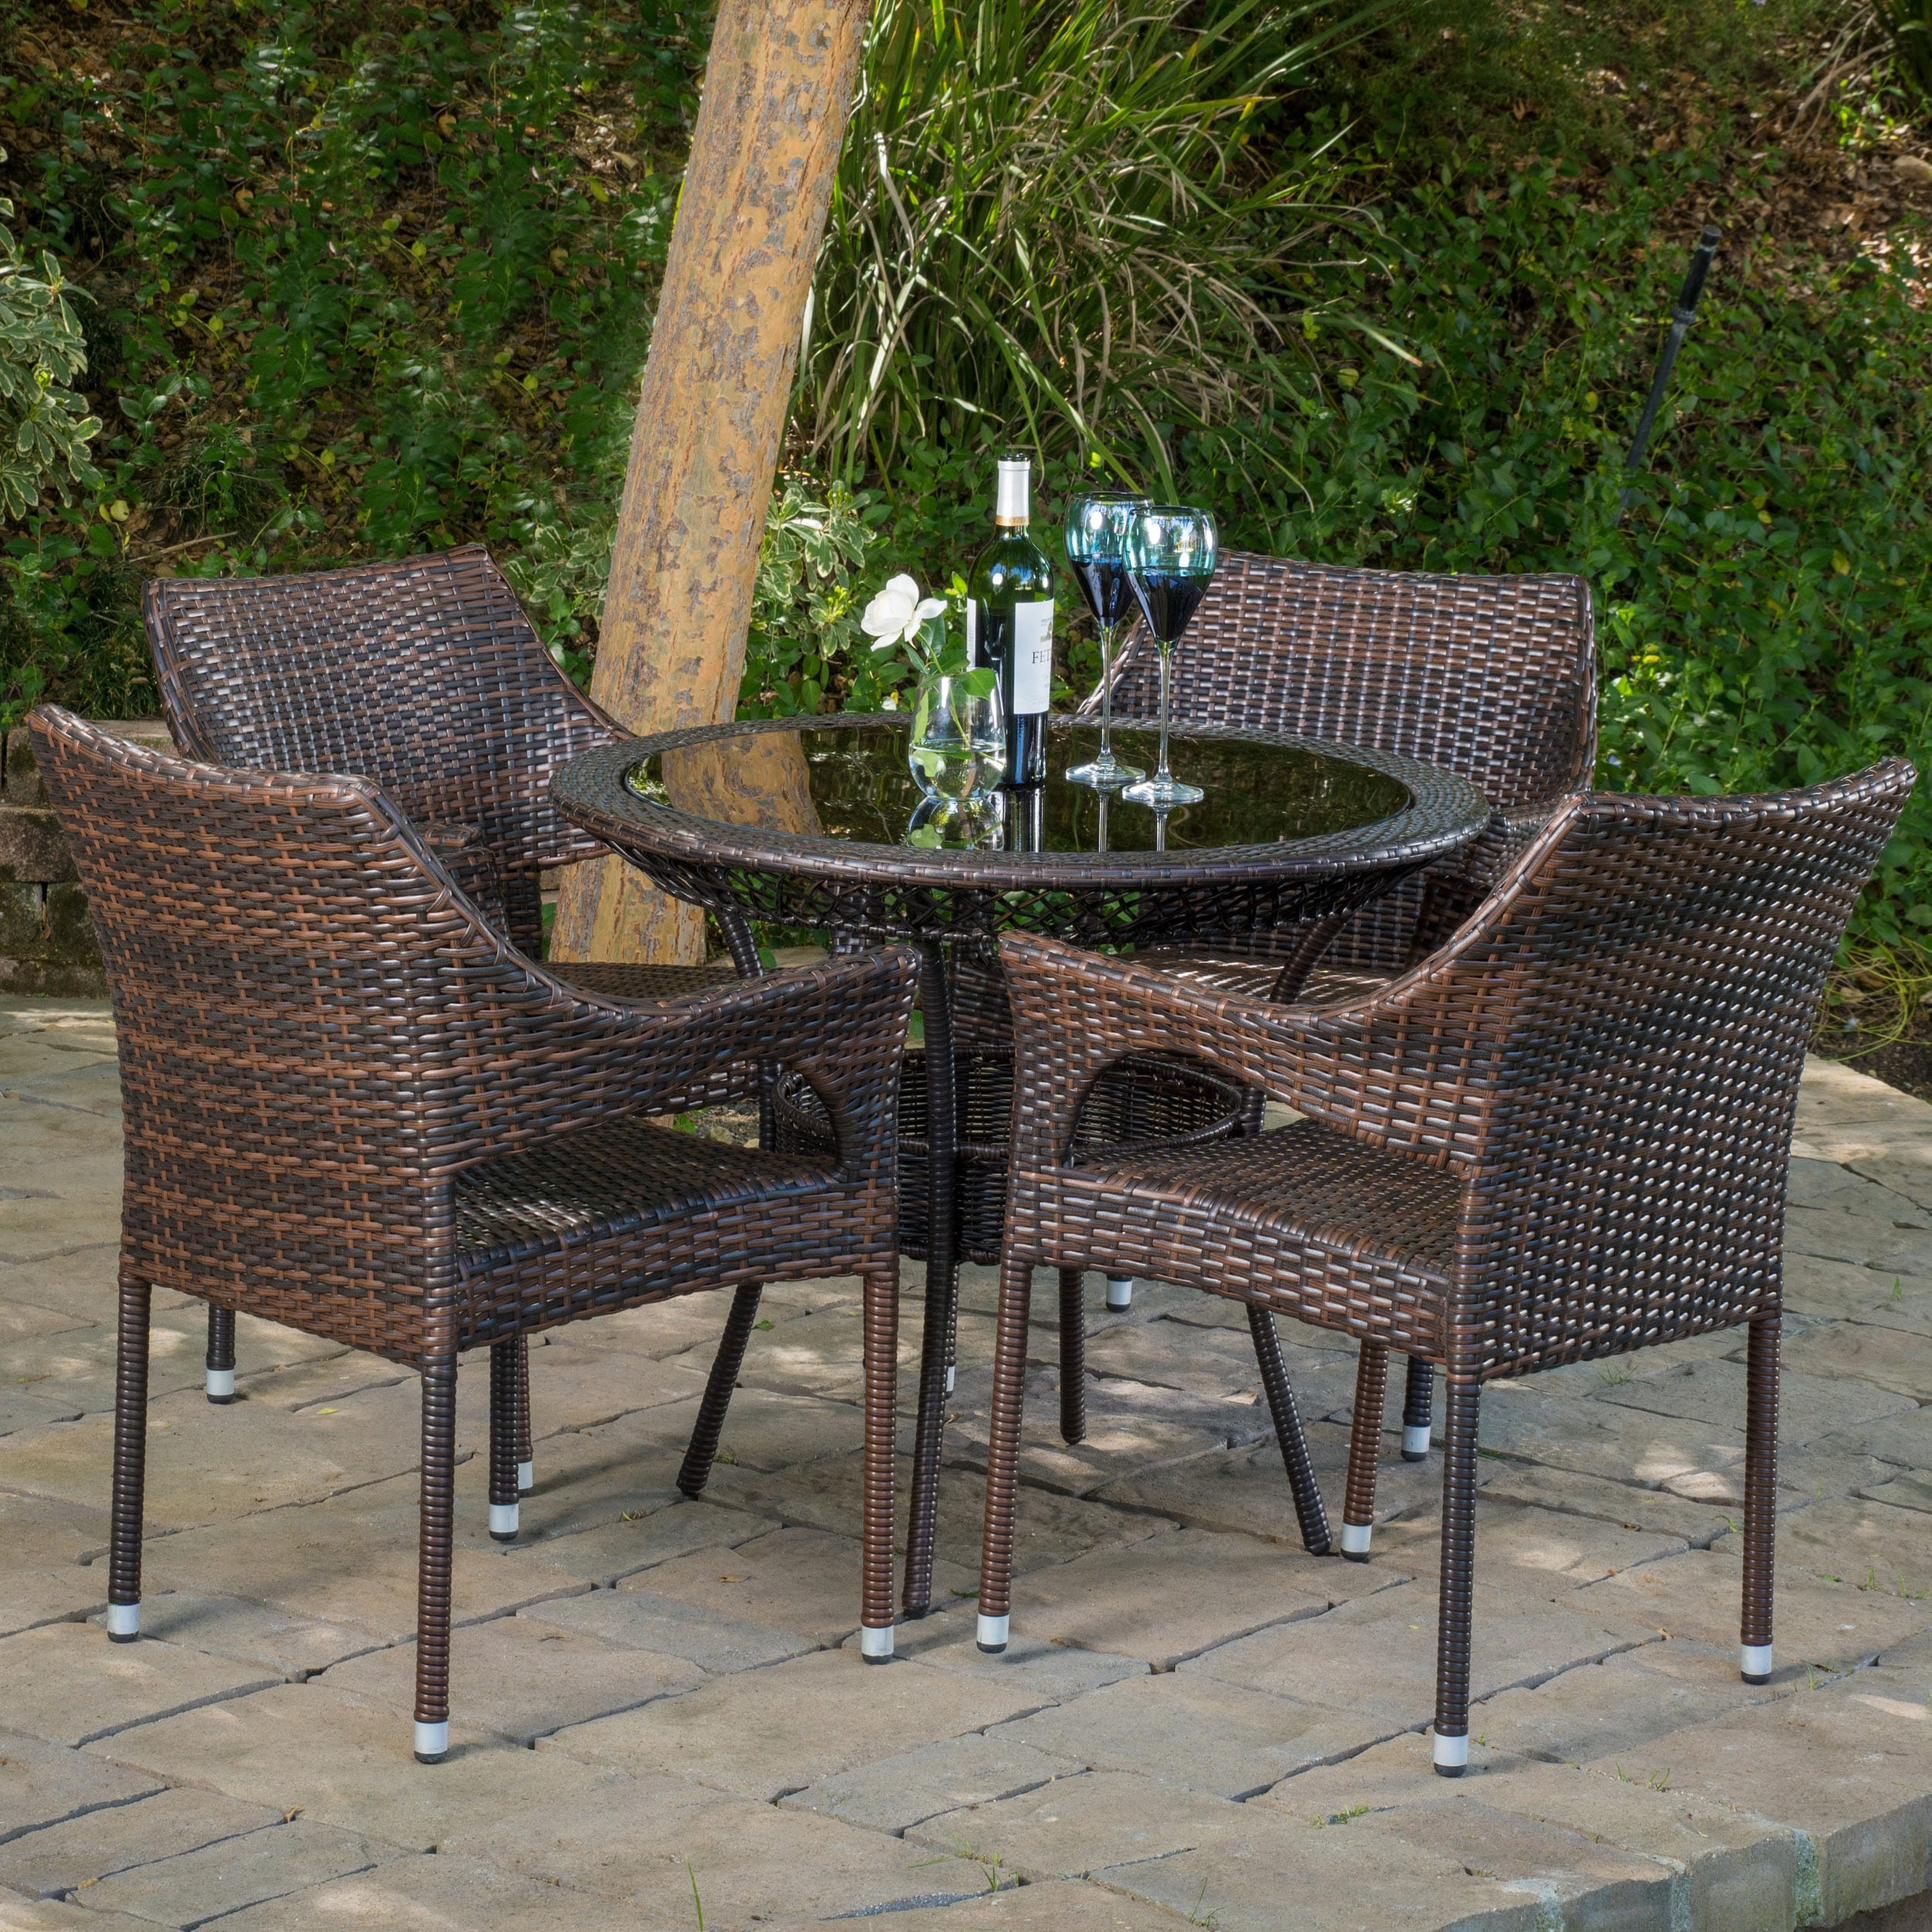 Great Mirage Outdoor 5 Piece Wicker Dining Set By Christopher Knight Home   Free  Shipping Today   Overstock   17235970